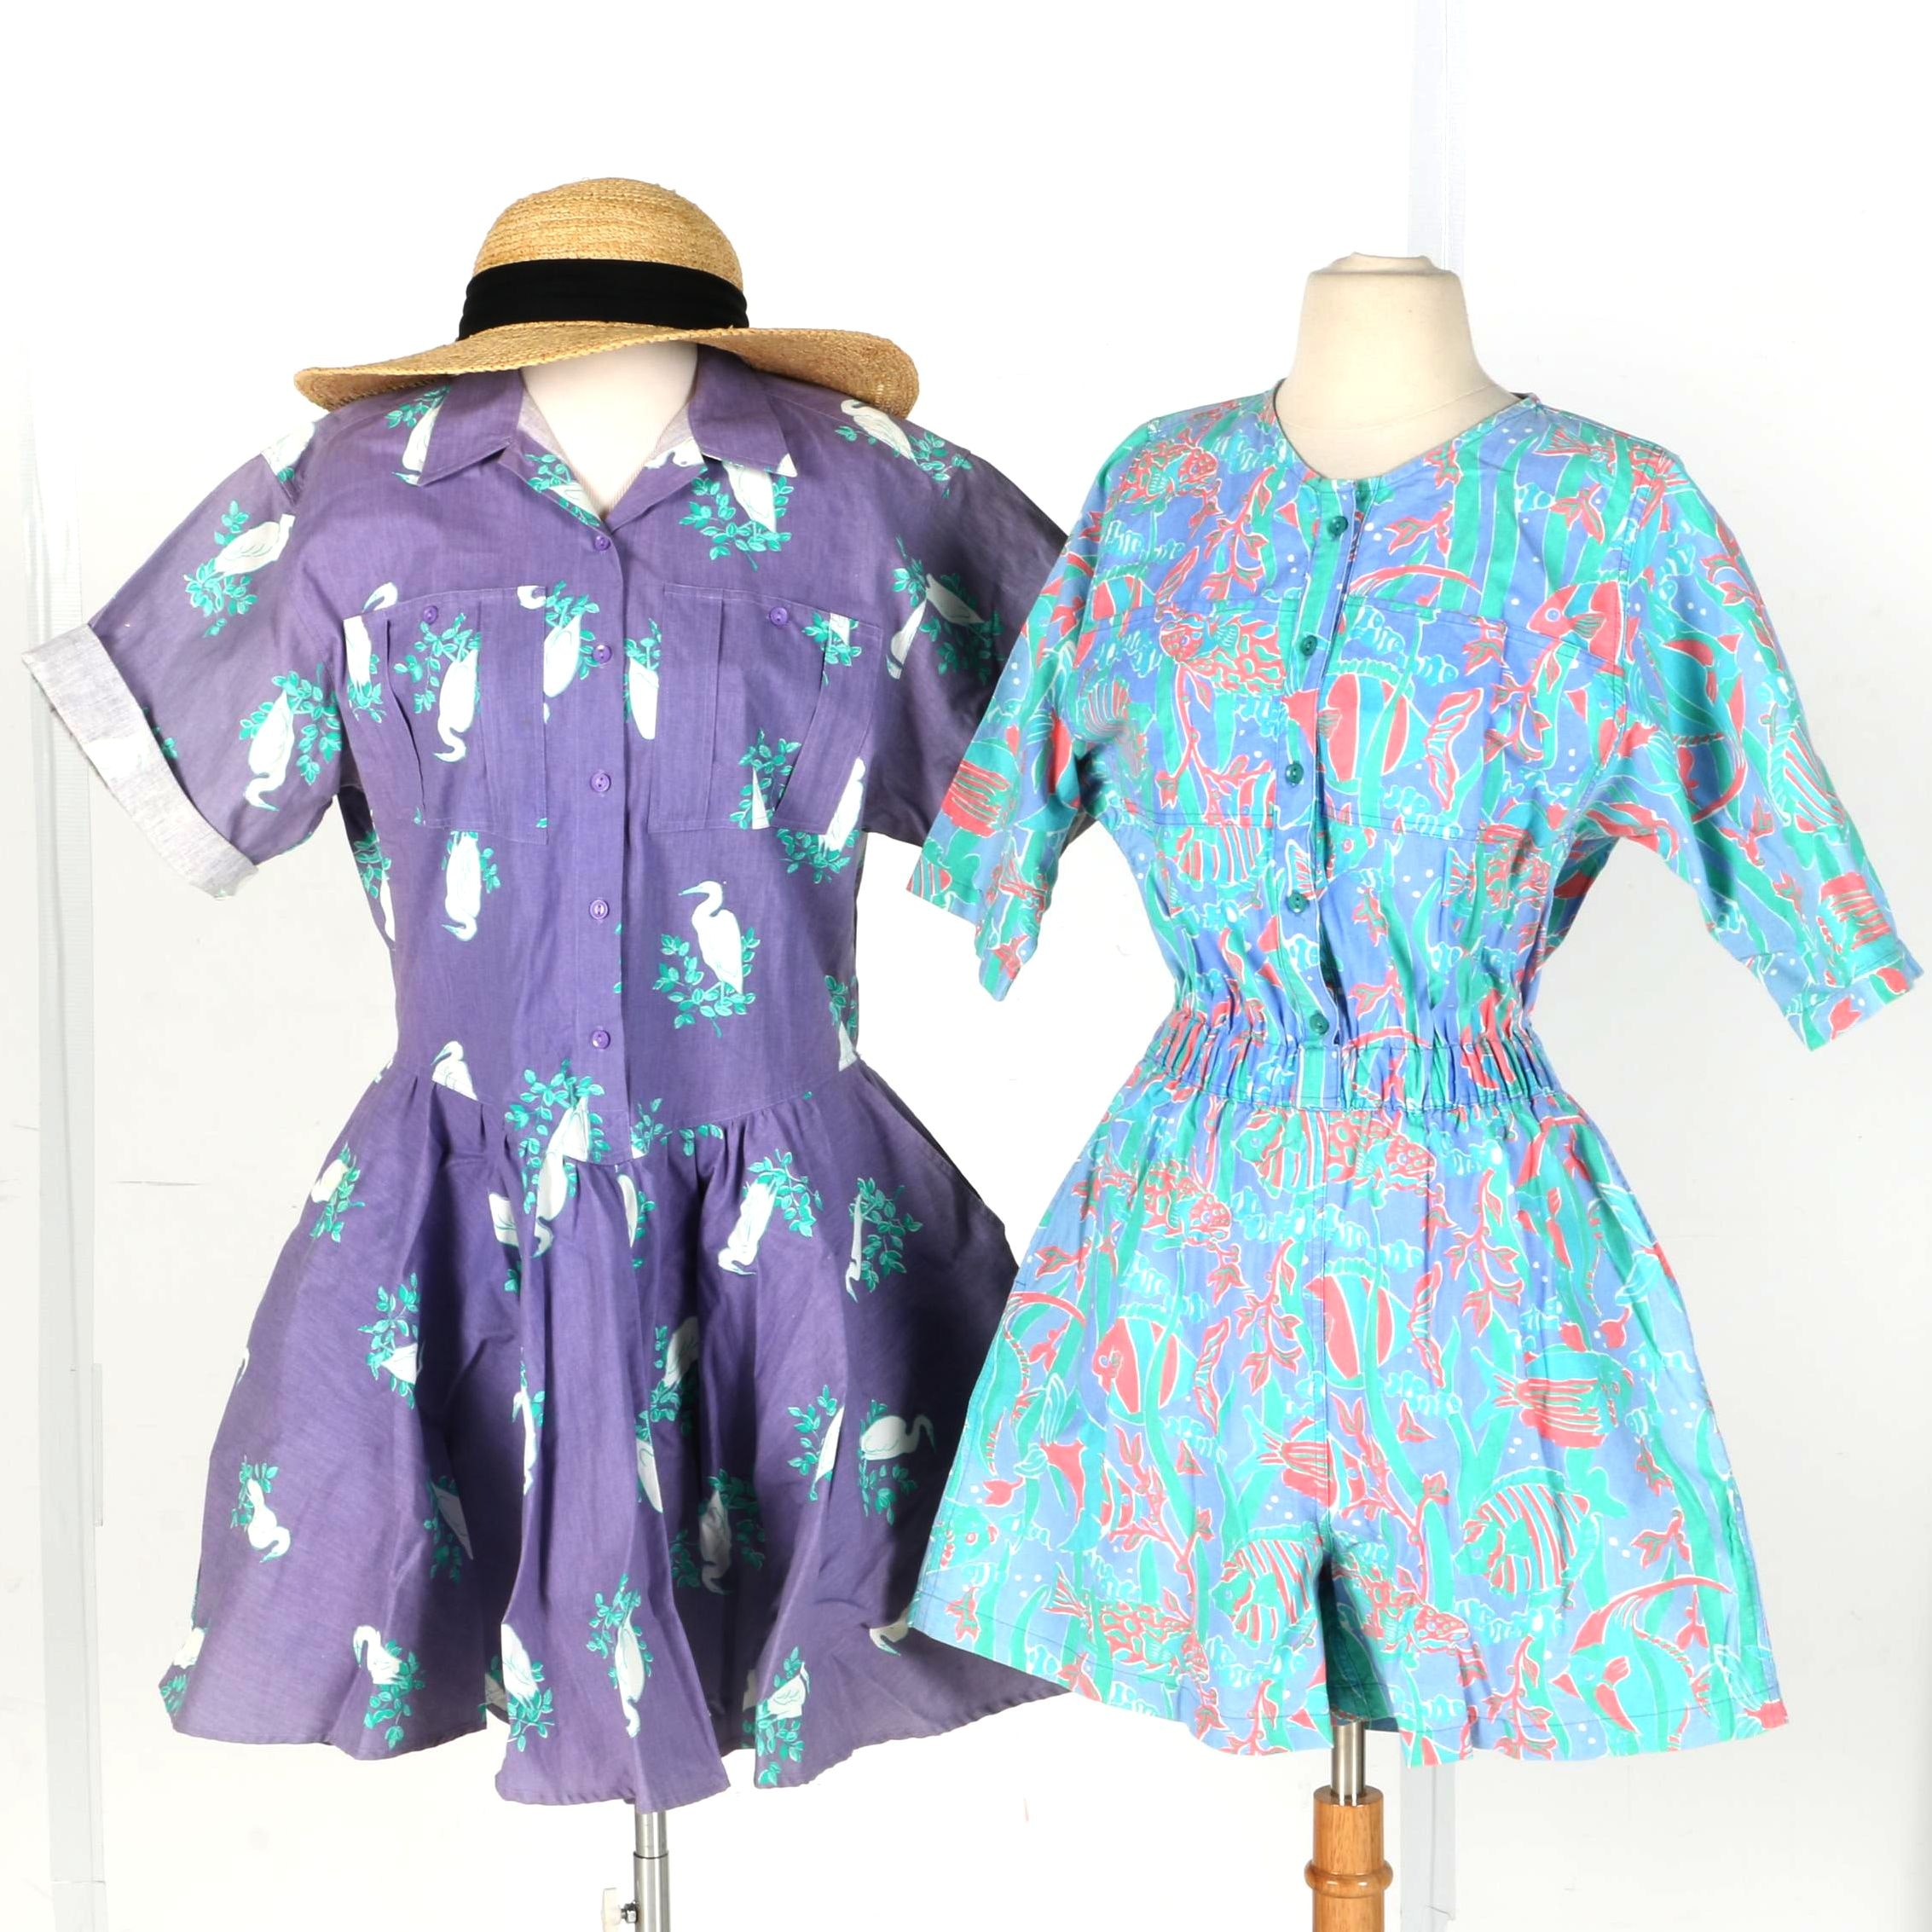 Dresses by Tikal Trading Company Key West and Hat